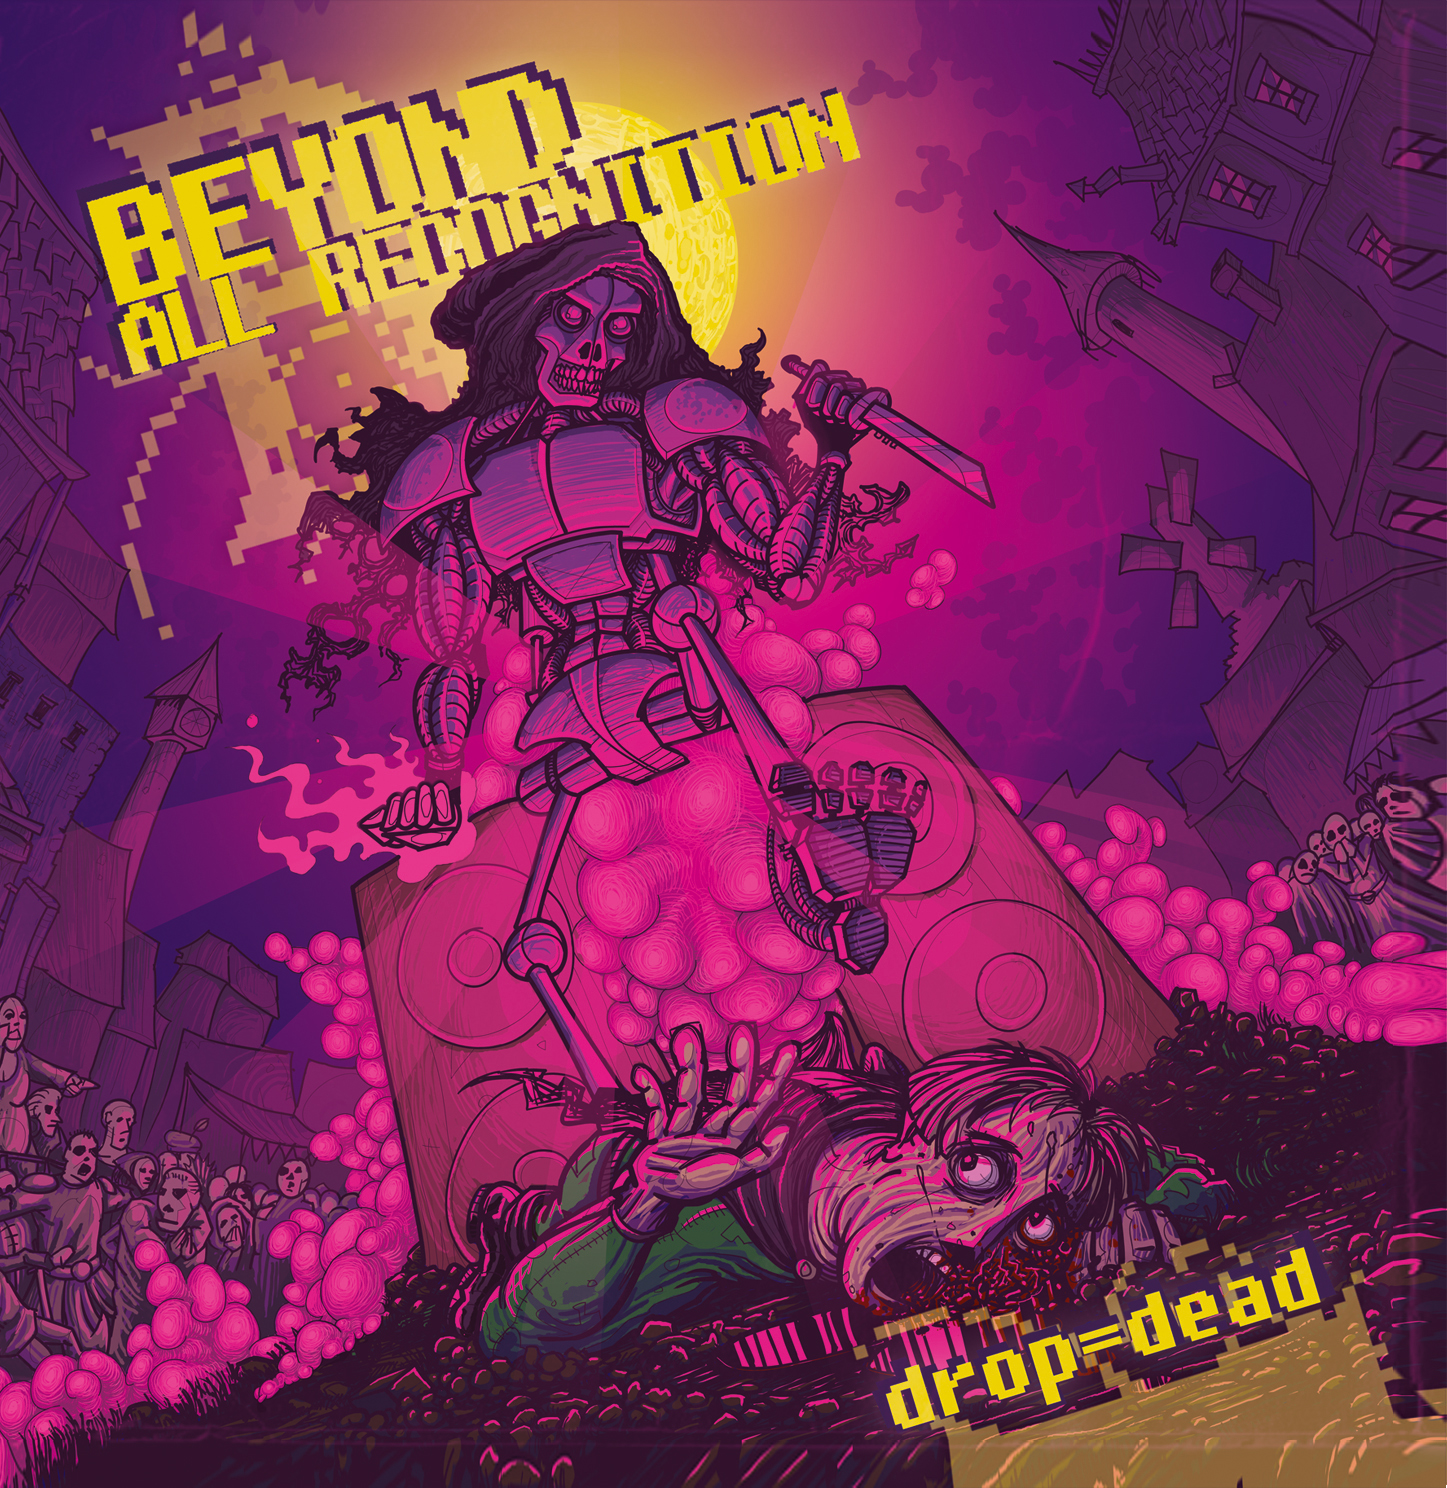 Beyond All Recognition DROP=DEAD (2012)